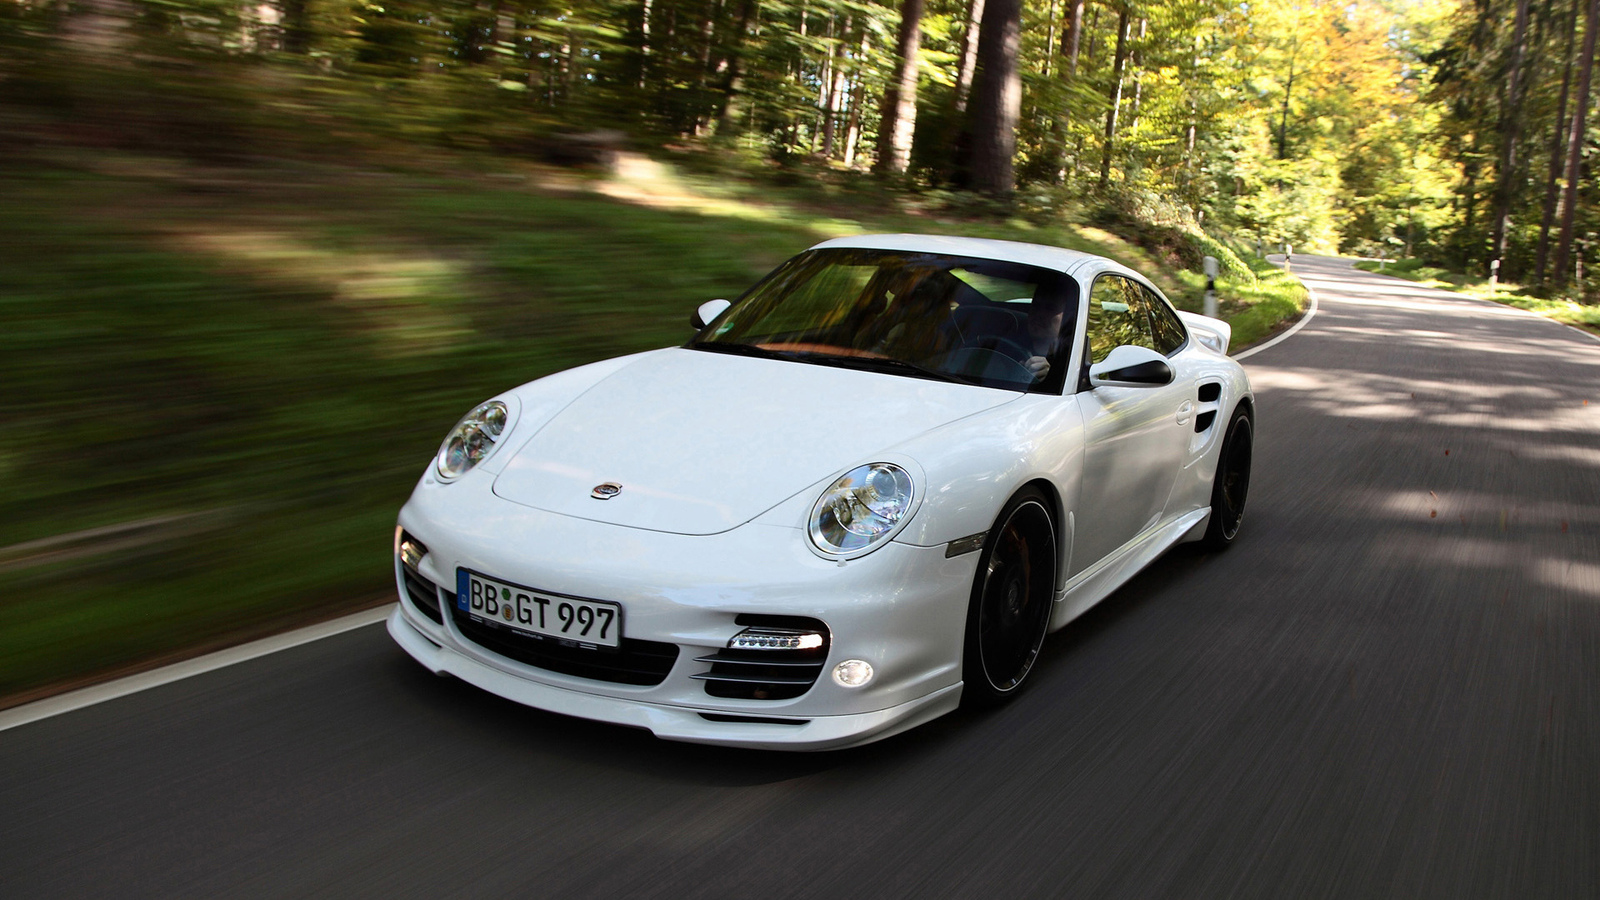 cars, turbo, wallpapers, дорога, auto, porsche 911, скорость